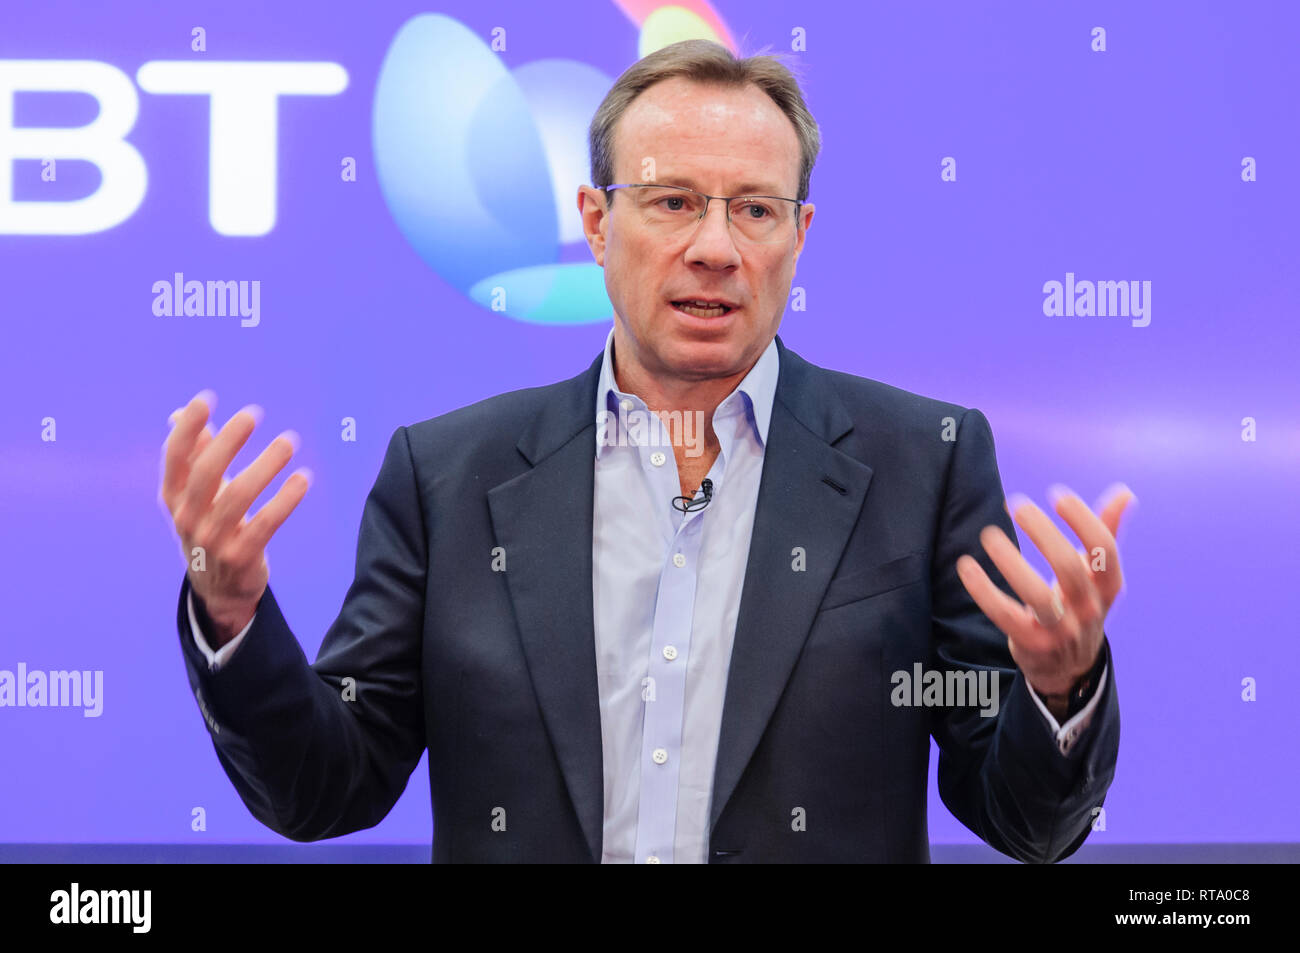 Philip Jansen, Chief Executive Officer of BT since 1st February 2019. Stock Photo